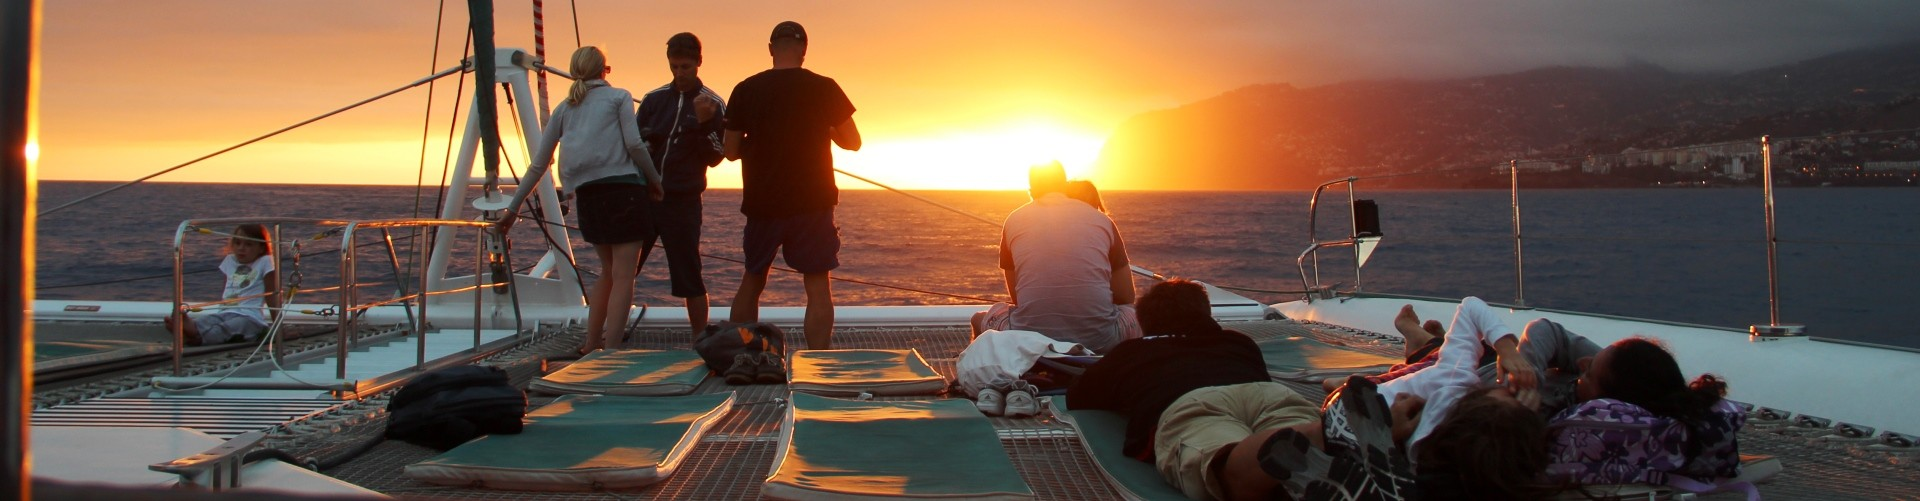 Catamaran Sunset Trip in Madeira Island